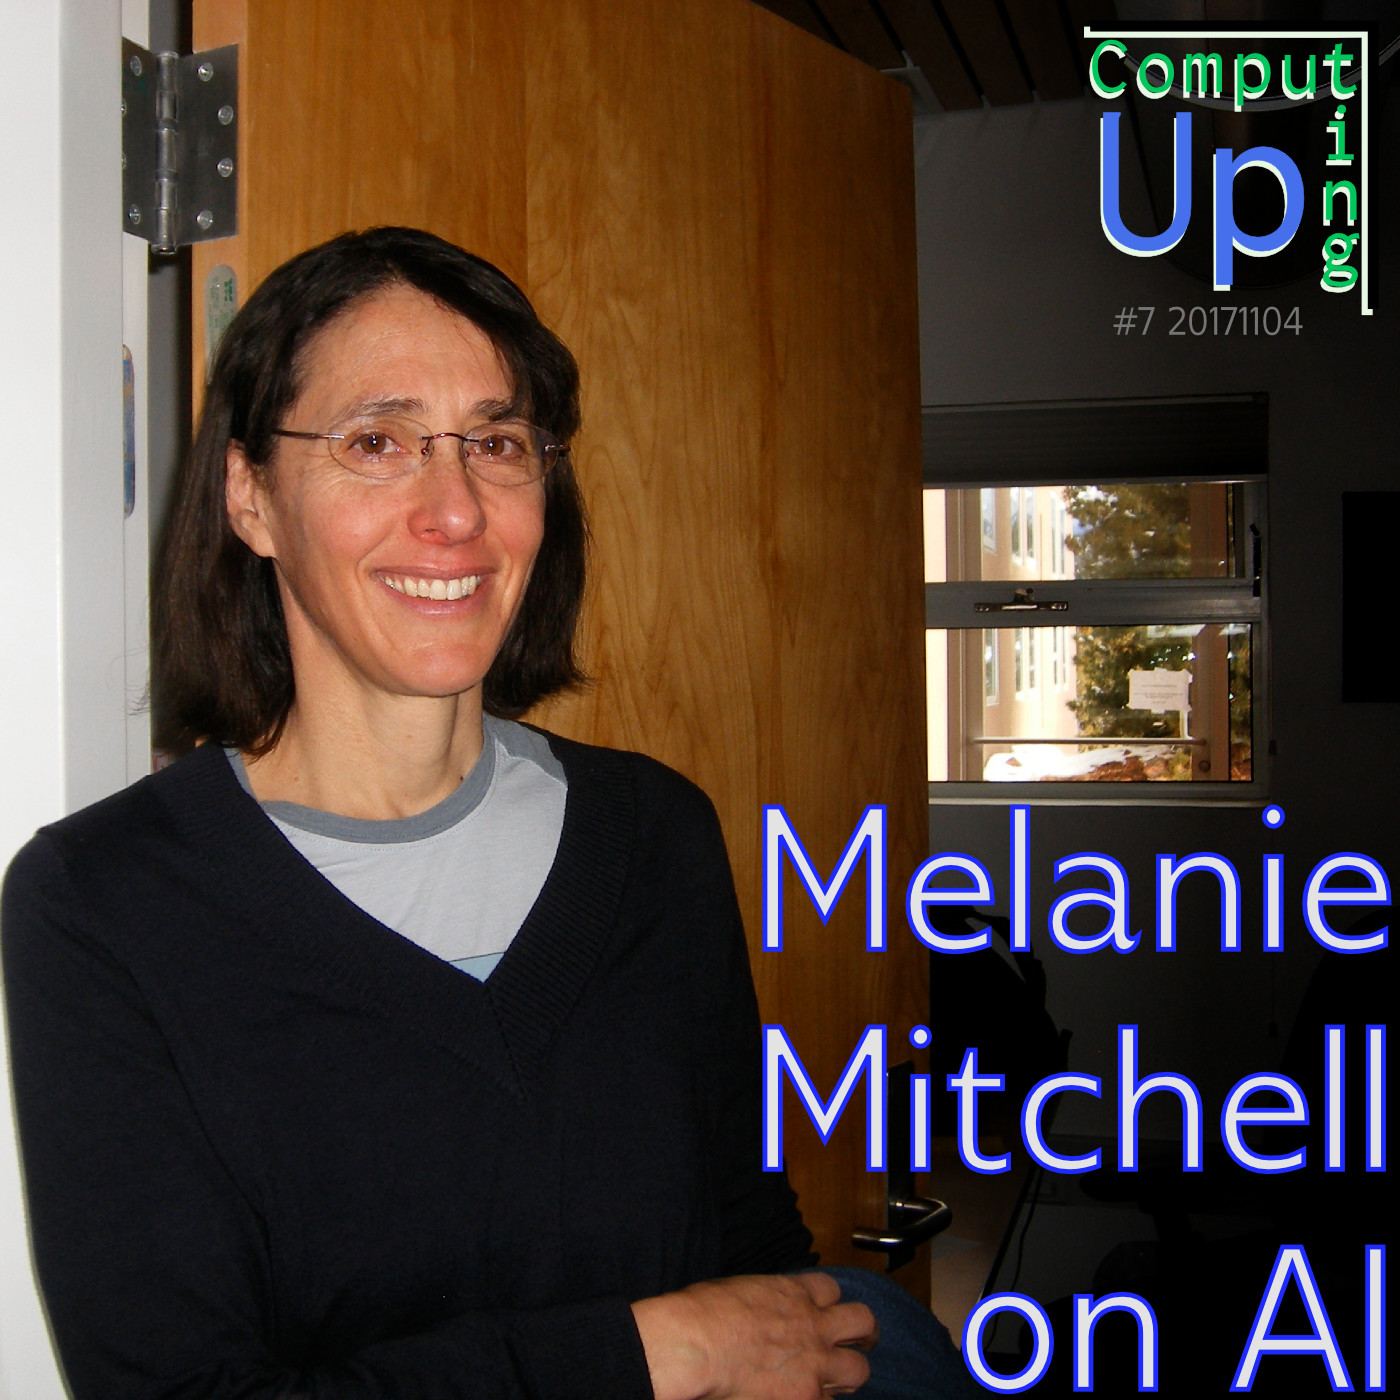 Artwork for Melanie Mitchell on AI - Computing Up Seventh Conversation